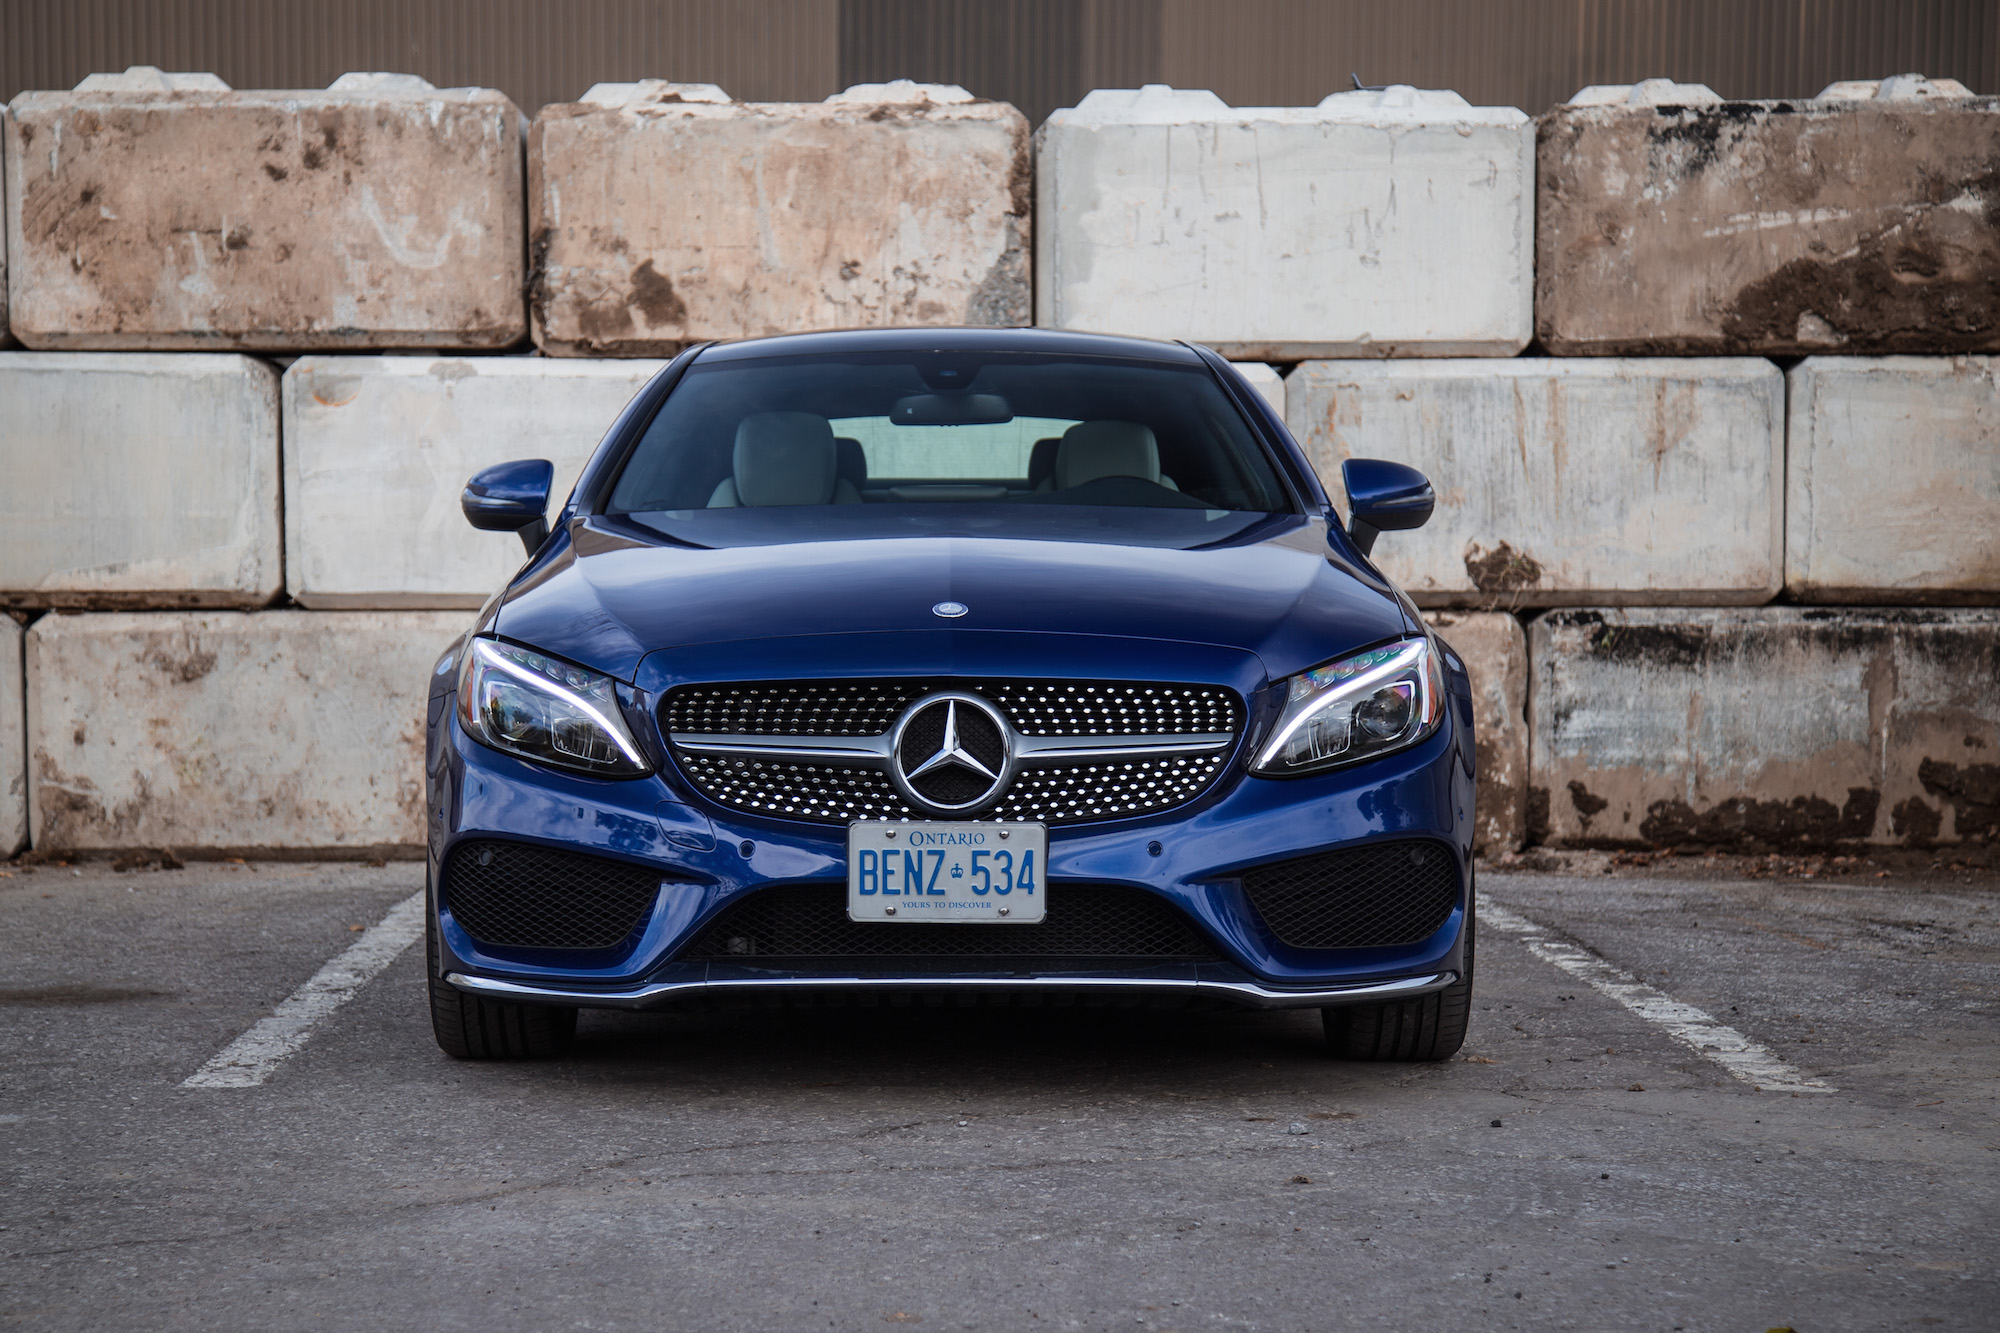 http://www.canadianautoreview.ca/images/car_photos/2017-mercedes-benz-c-class-coupe/normal/c-class-coupe-sport-package.jpg